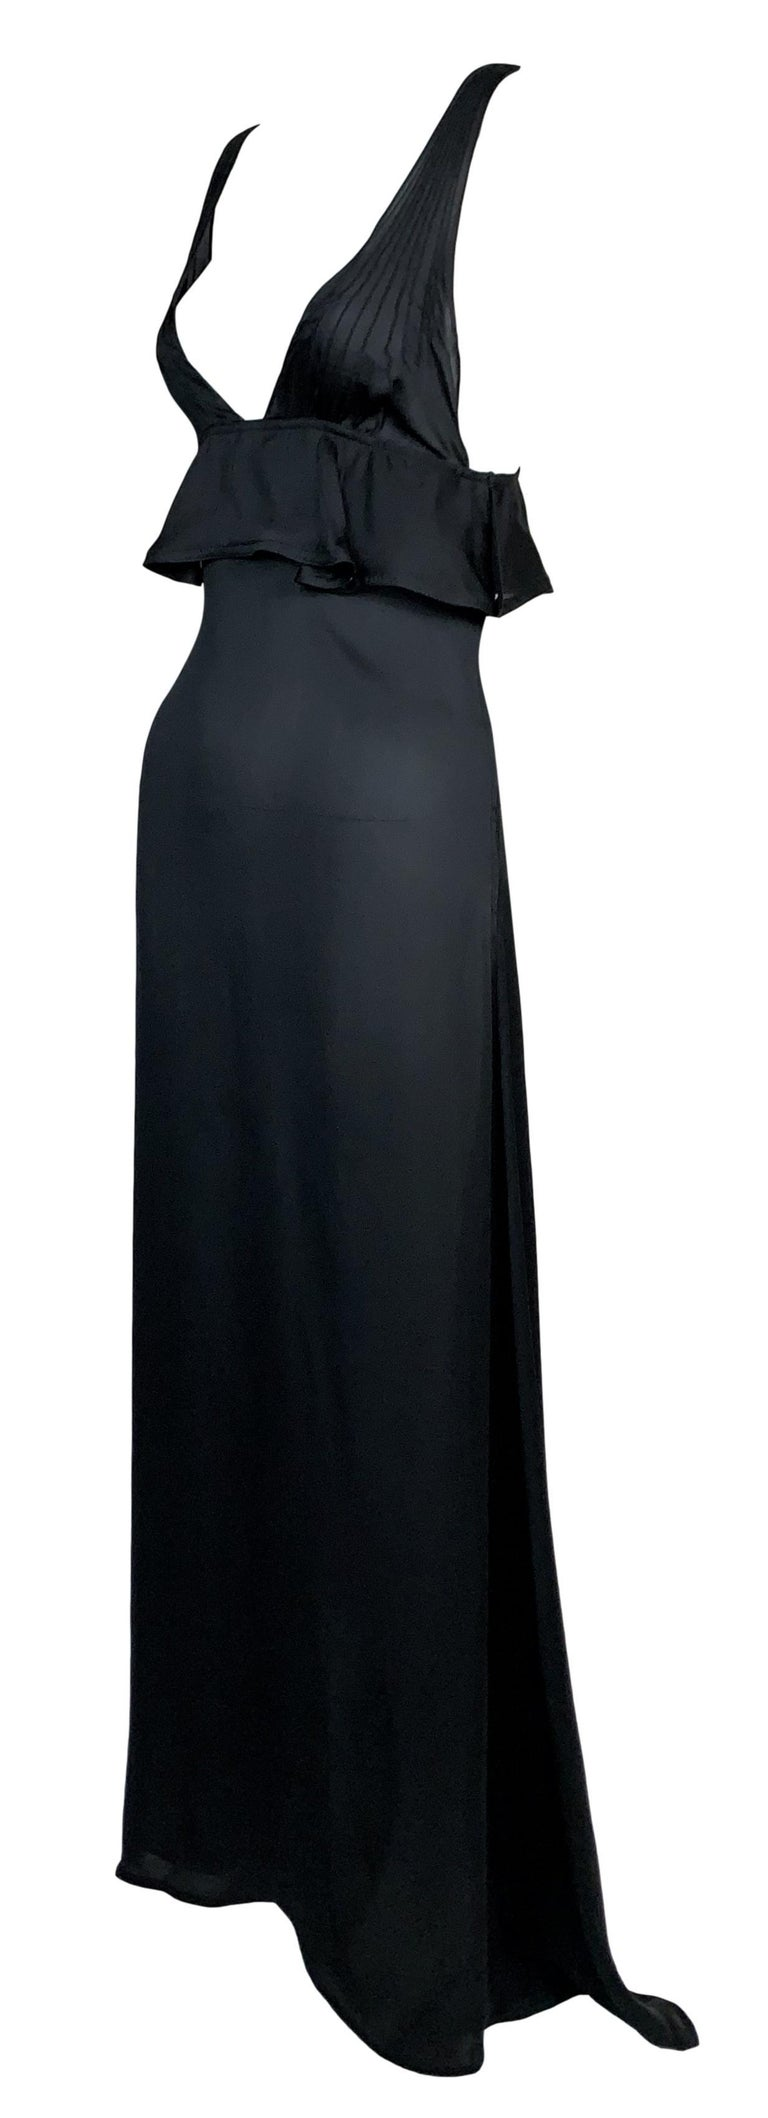 F/W 2003 Yves Saint Laurent Tom Ford Runway Sheer Black Silk Plunging Gown Dress In Good Condition For Sale In Yukon, OK